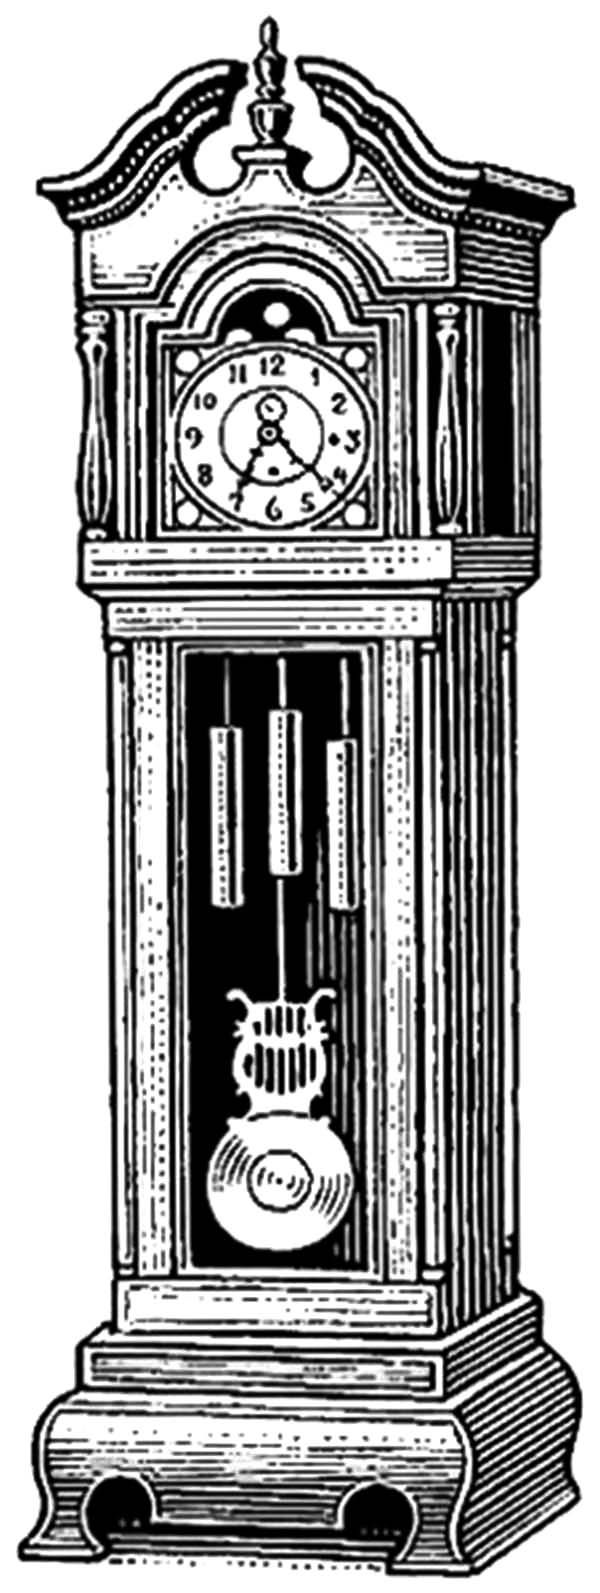 how to draw a clock old clock drawing at getdrawings free download draw clock how to a